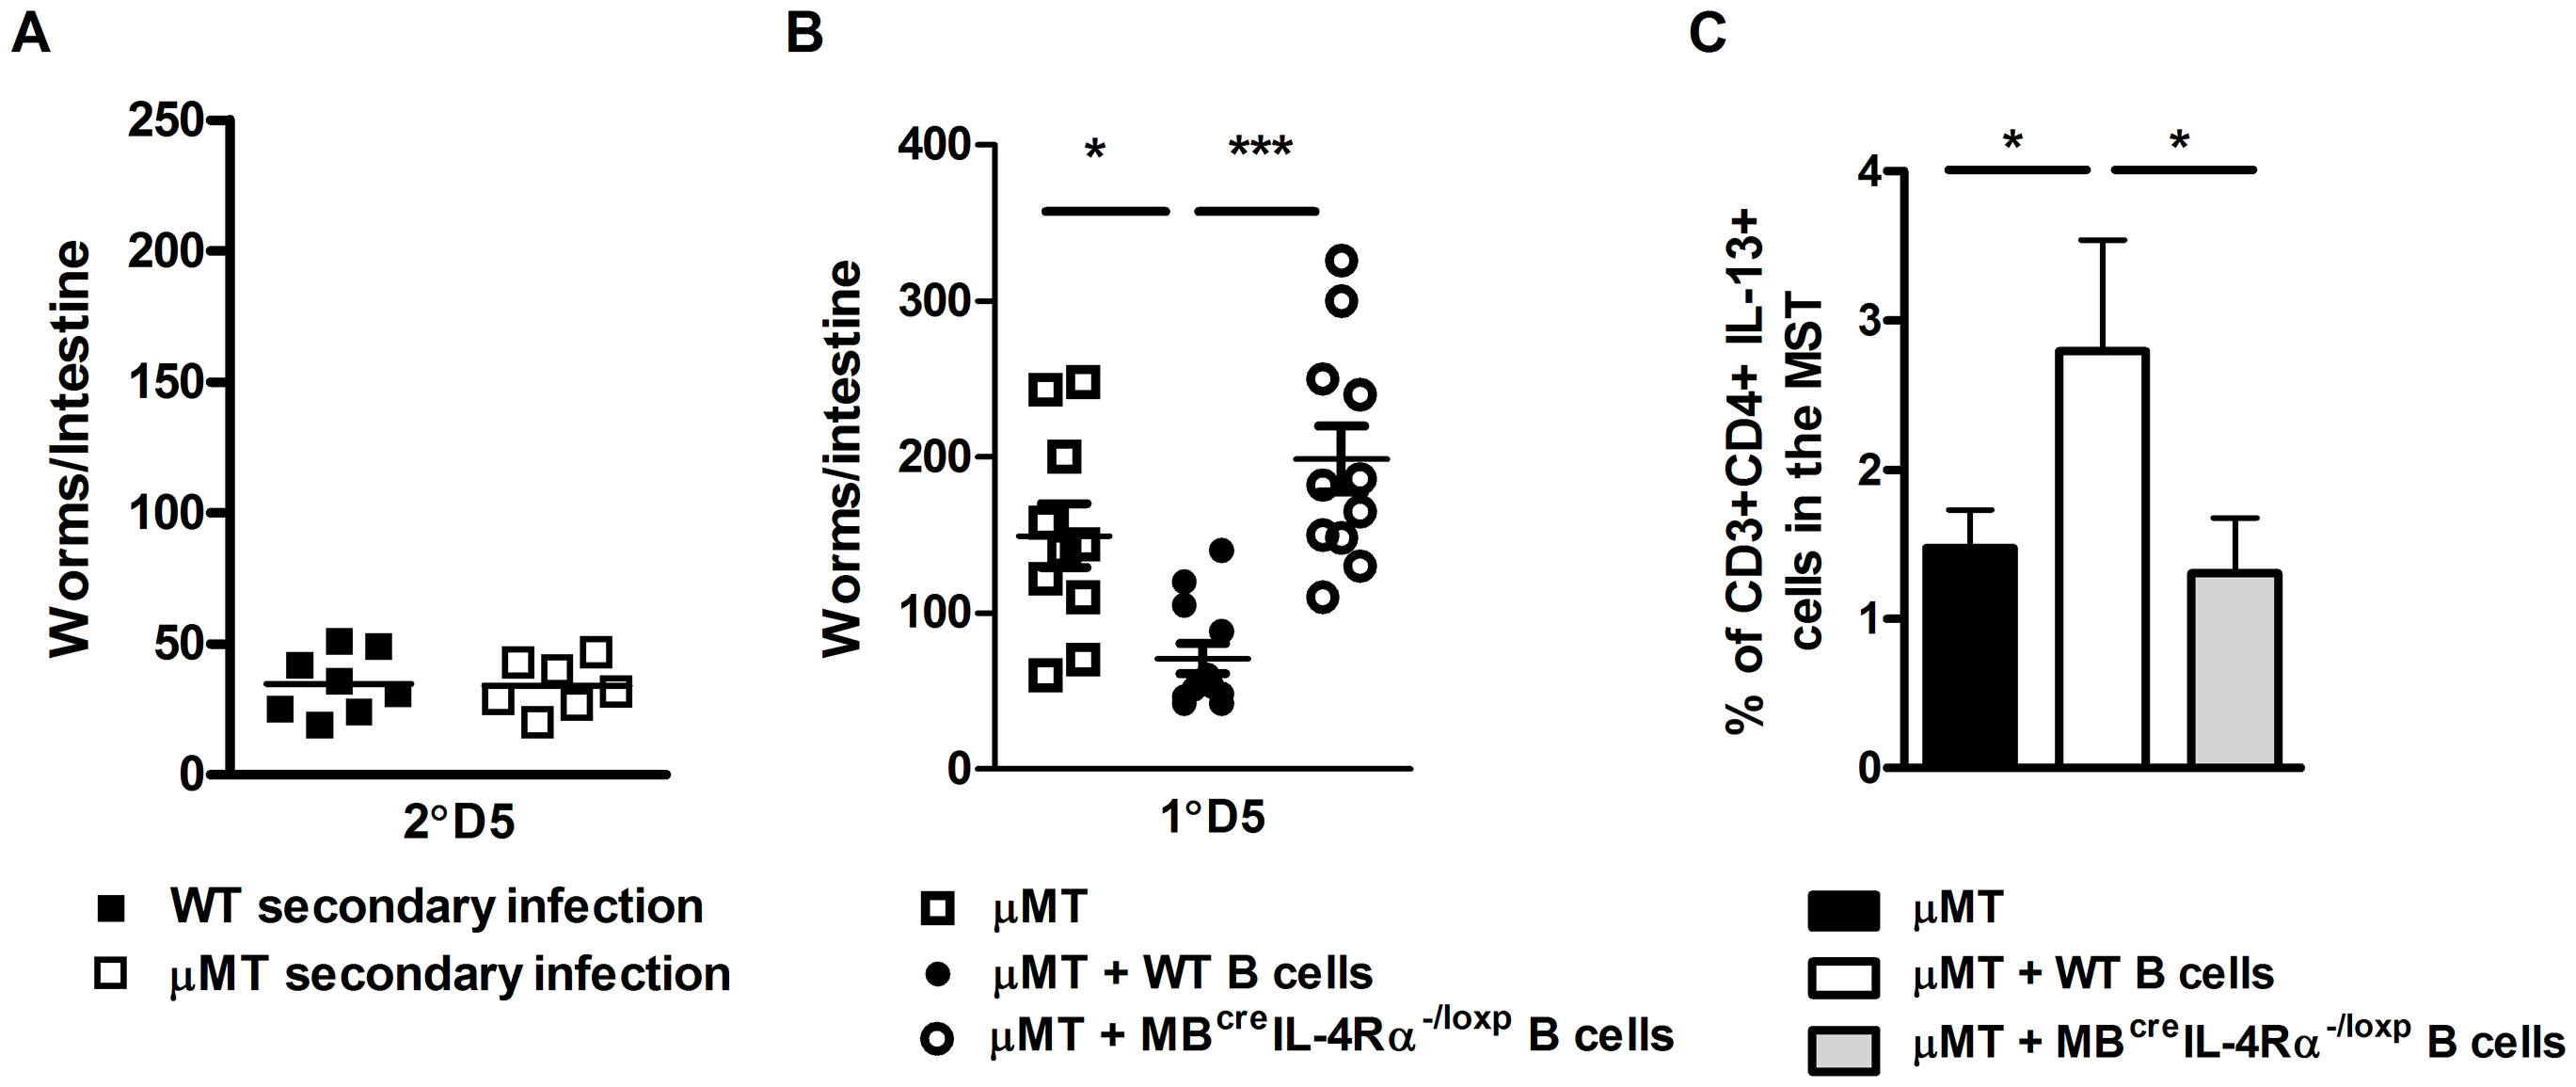 Transfer of <i>N. brasiliensis</i> experienced B cells enhances immunity to N. brasiliensis independently of endogenous B cell populations.